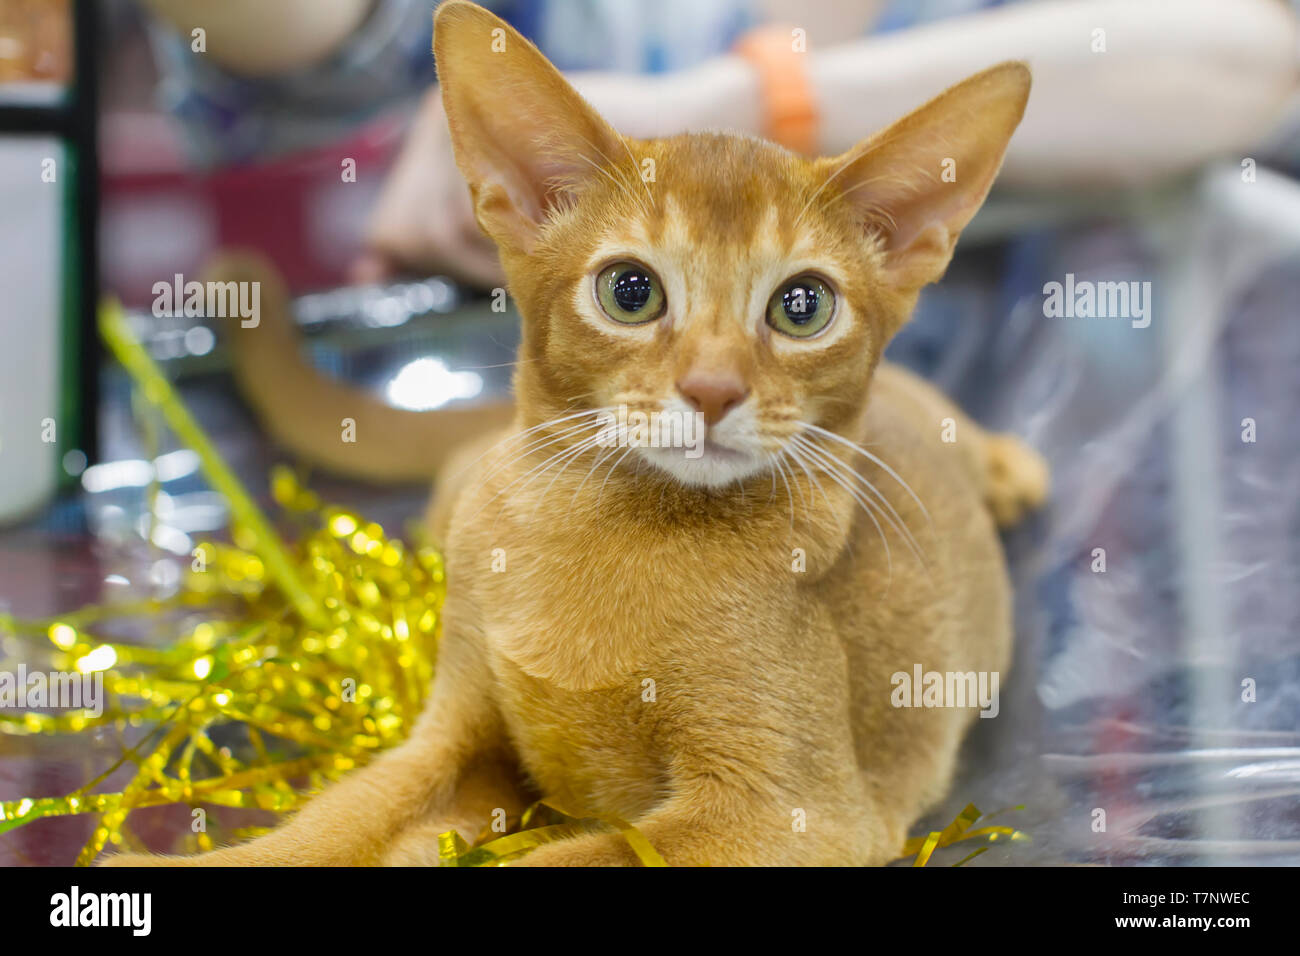 Ginger kitten with green eyes and big ears Stock Photo